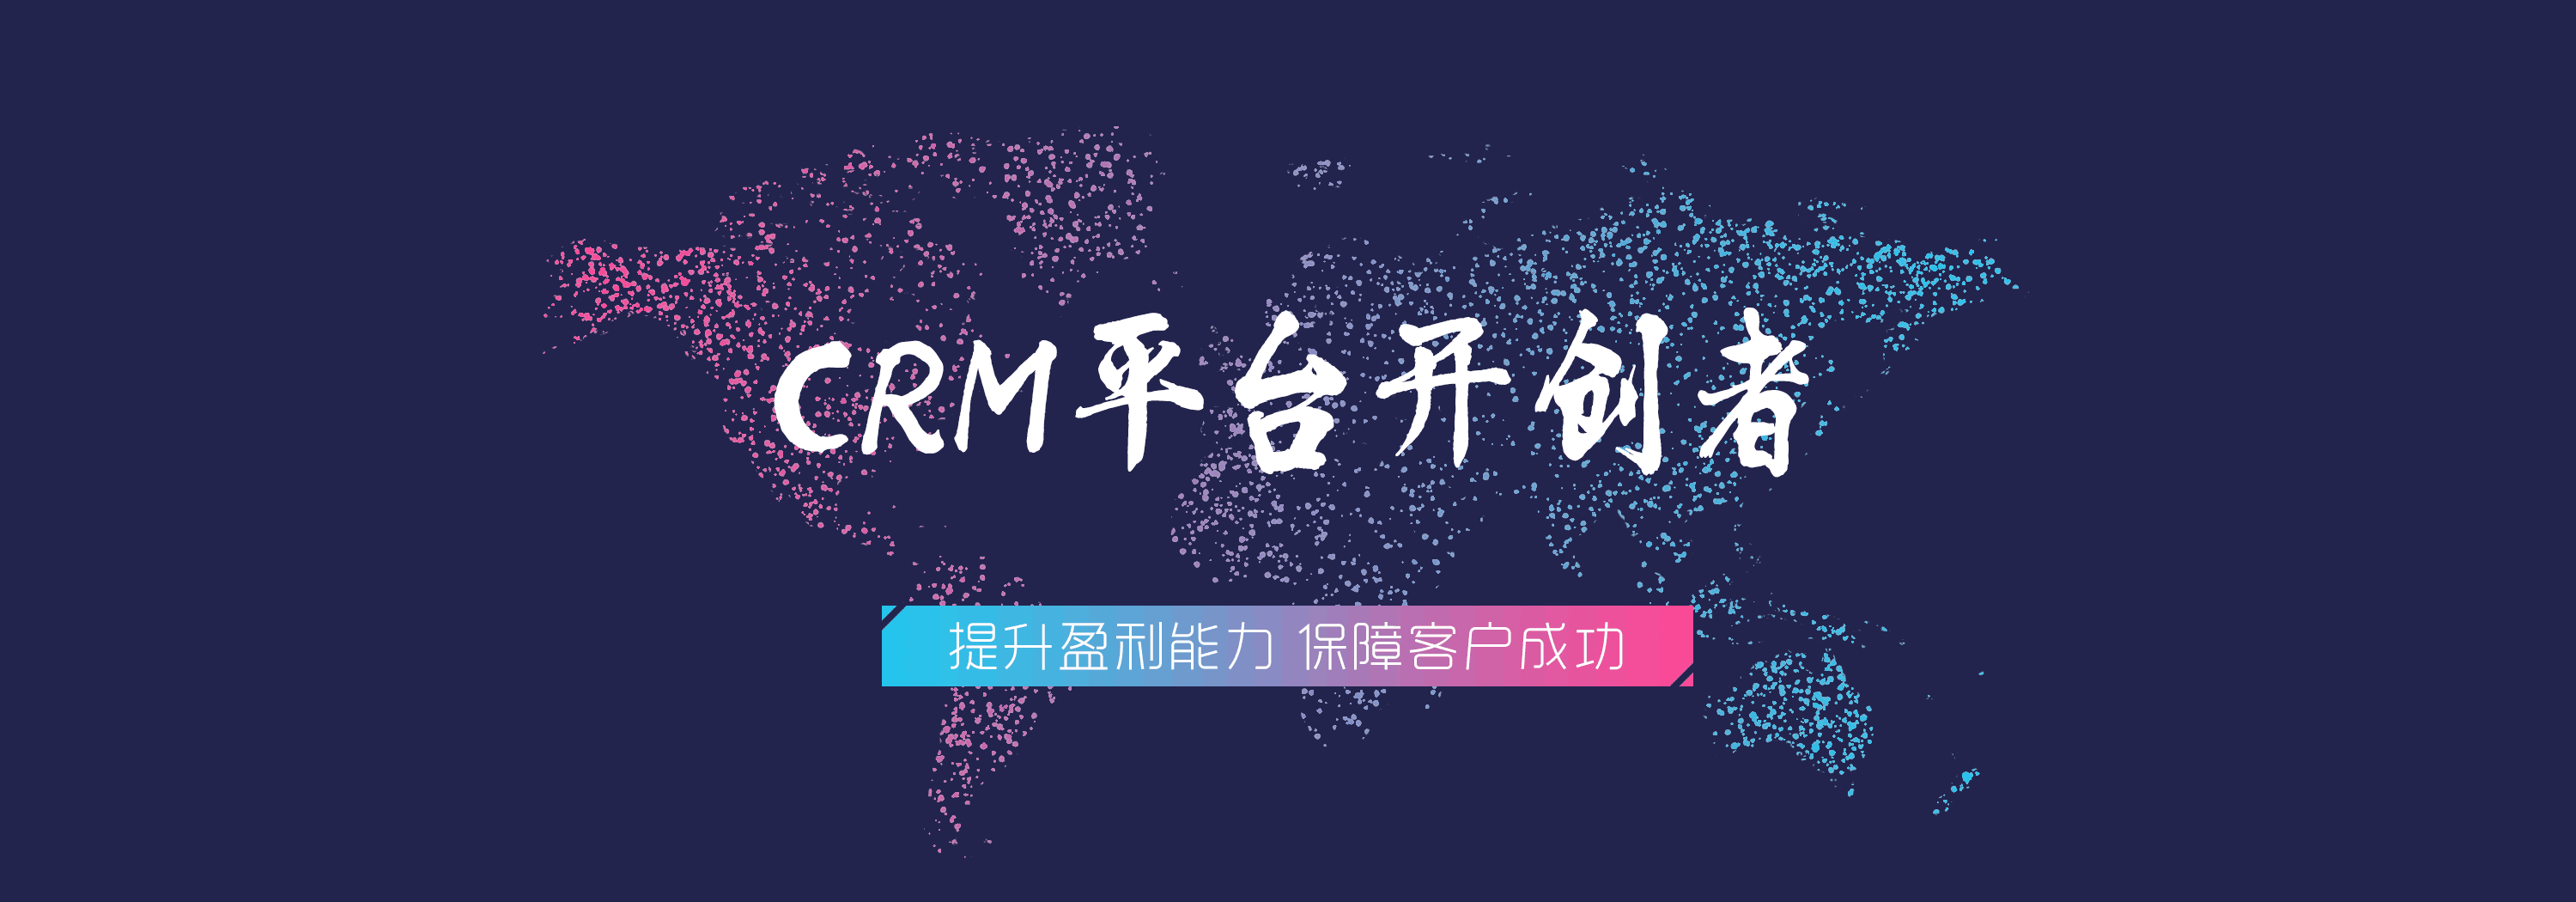 CRM系统开创者